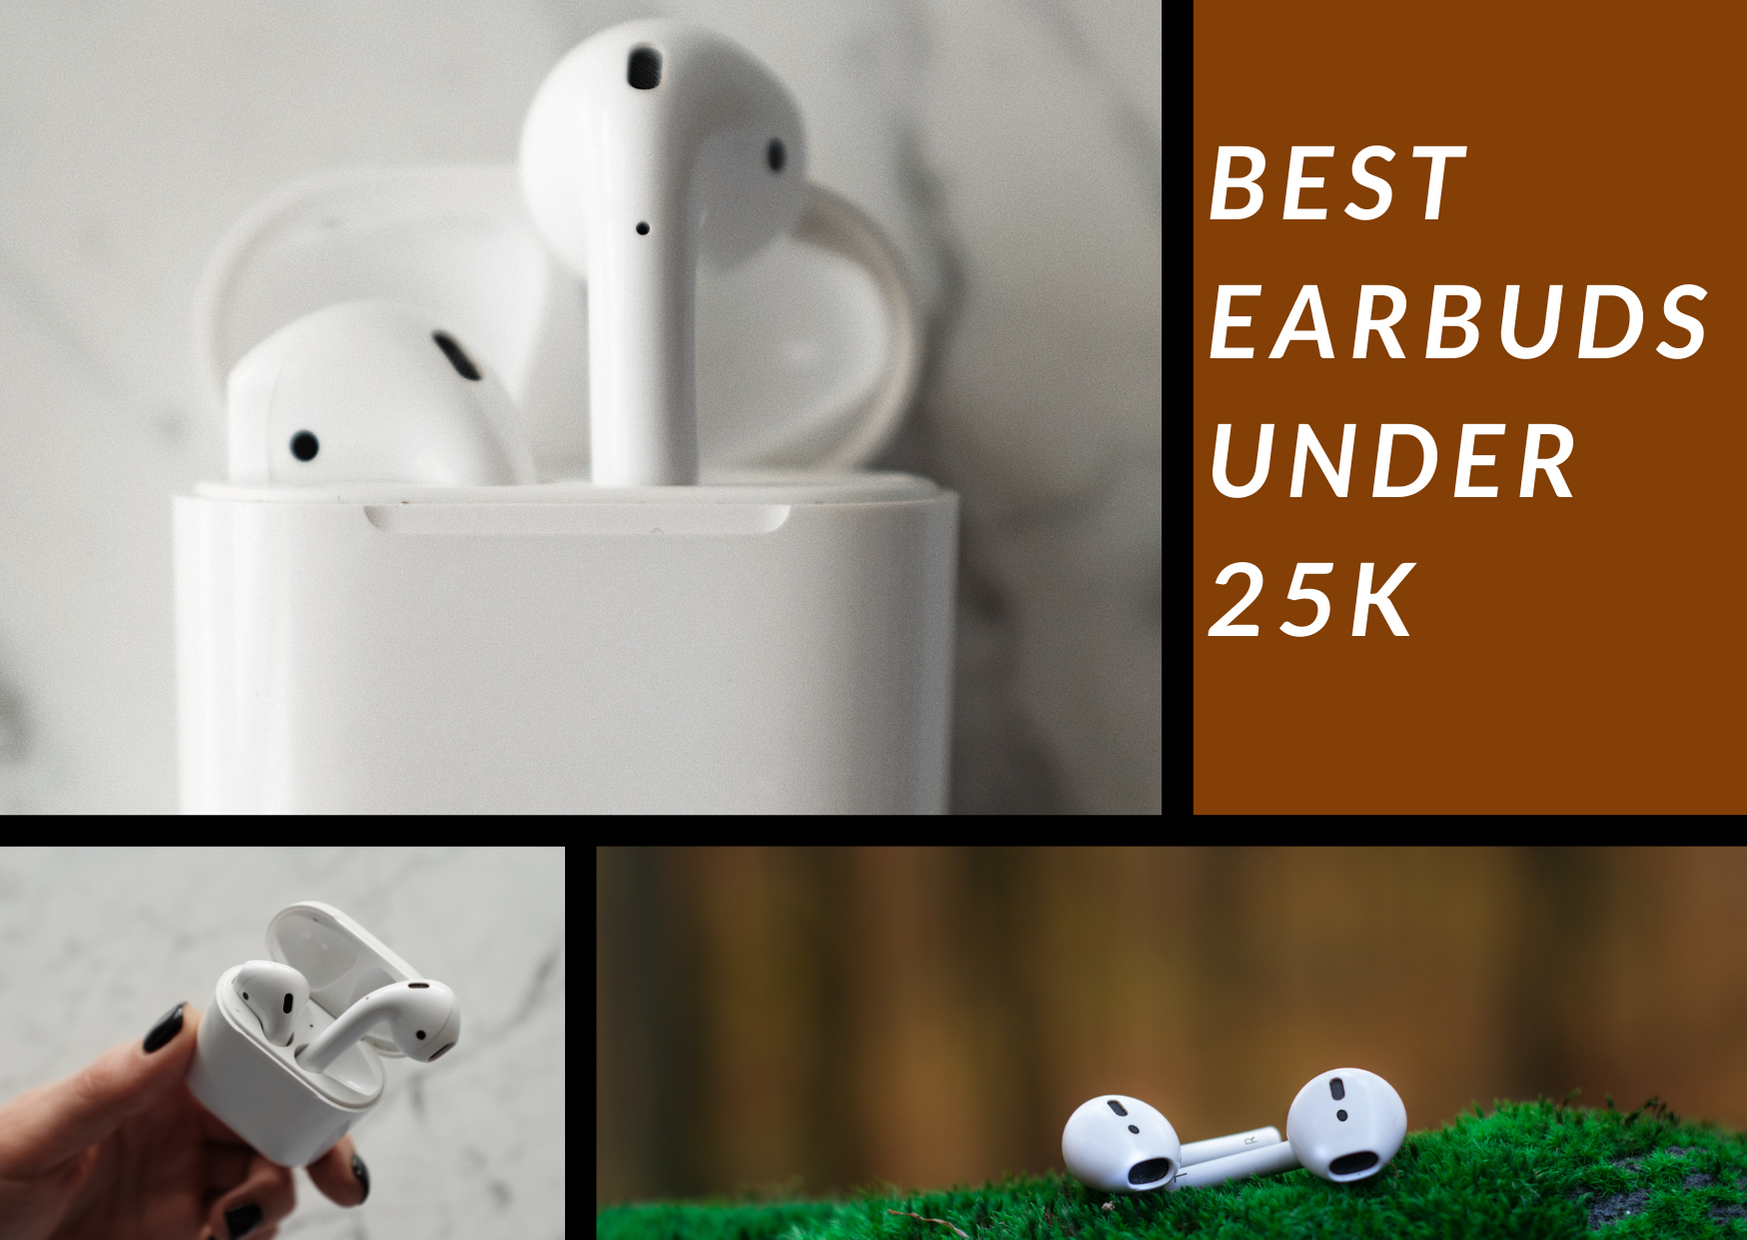 Best Earbuds for Office Use (2021)